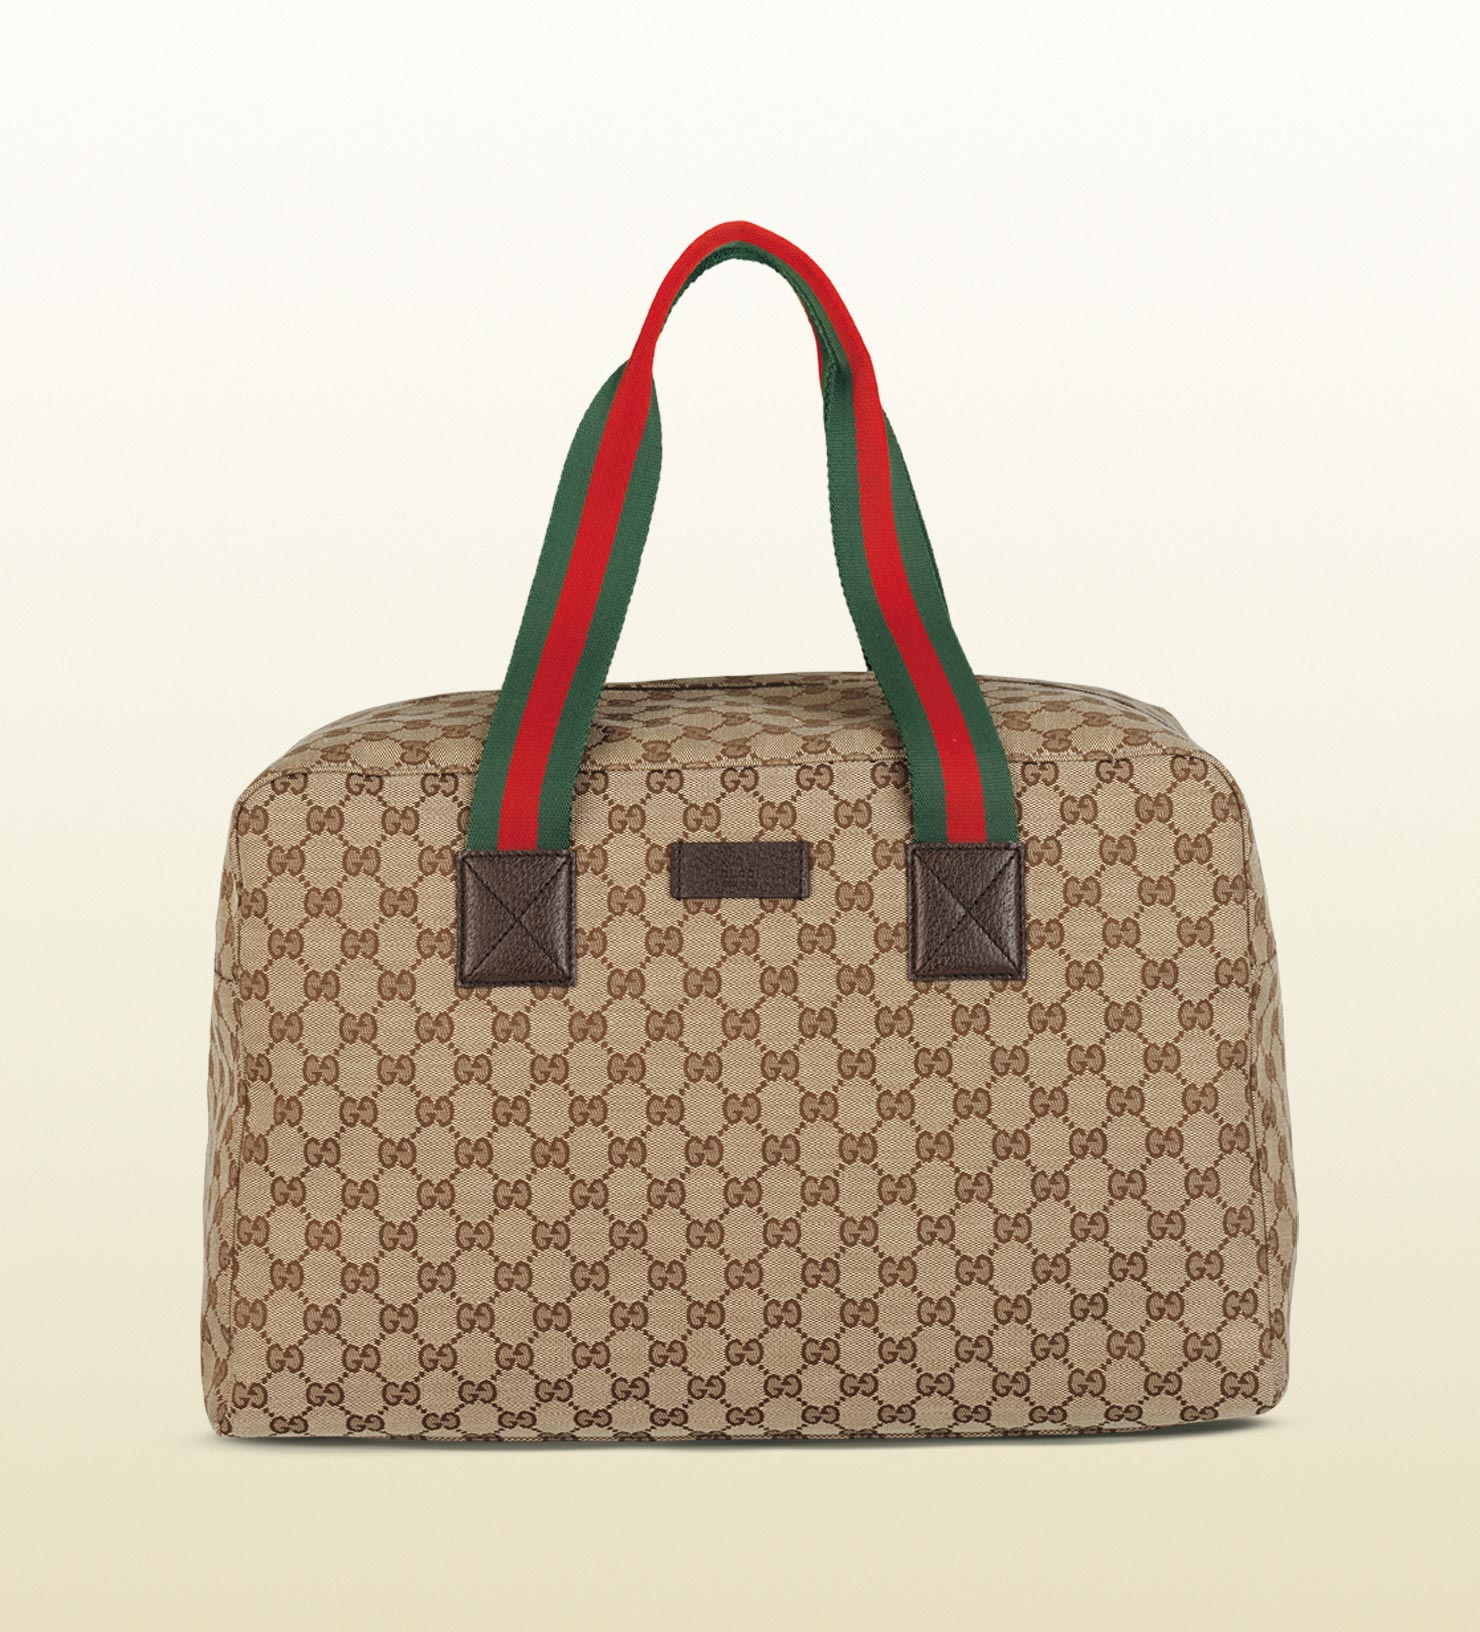 Lyst - Gucci Original Gg Canvas Carry-on Duffle Bag in Natural for Men 9fbb52ff3117e